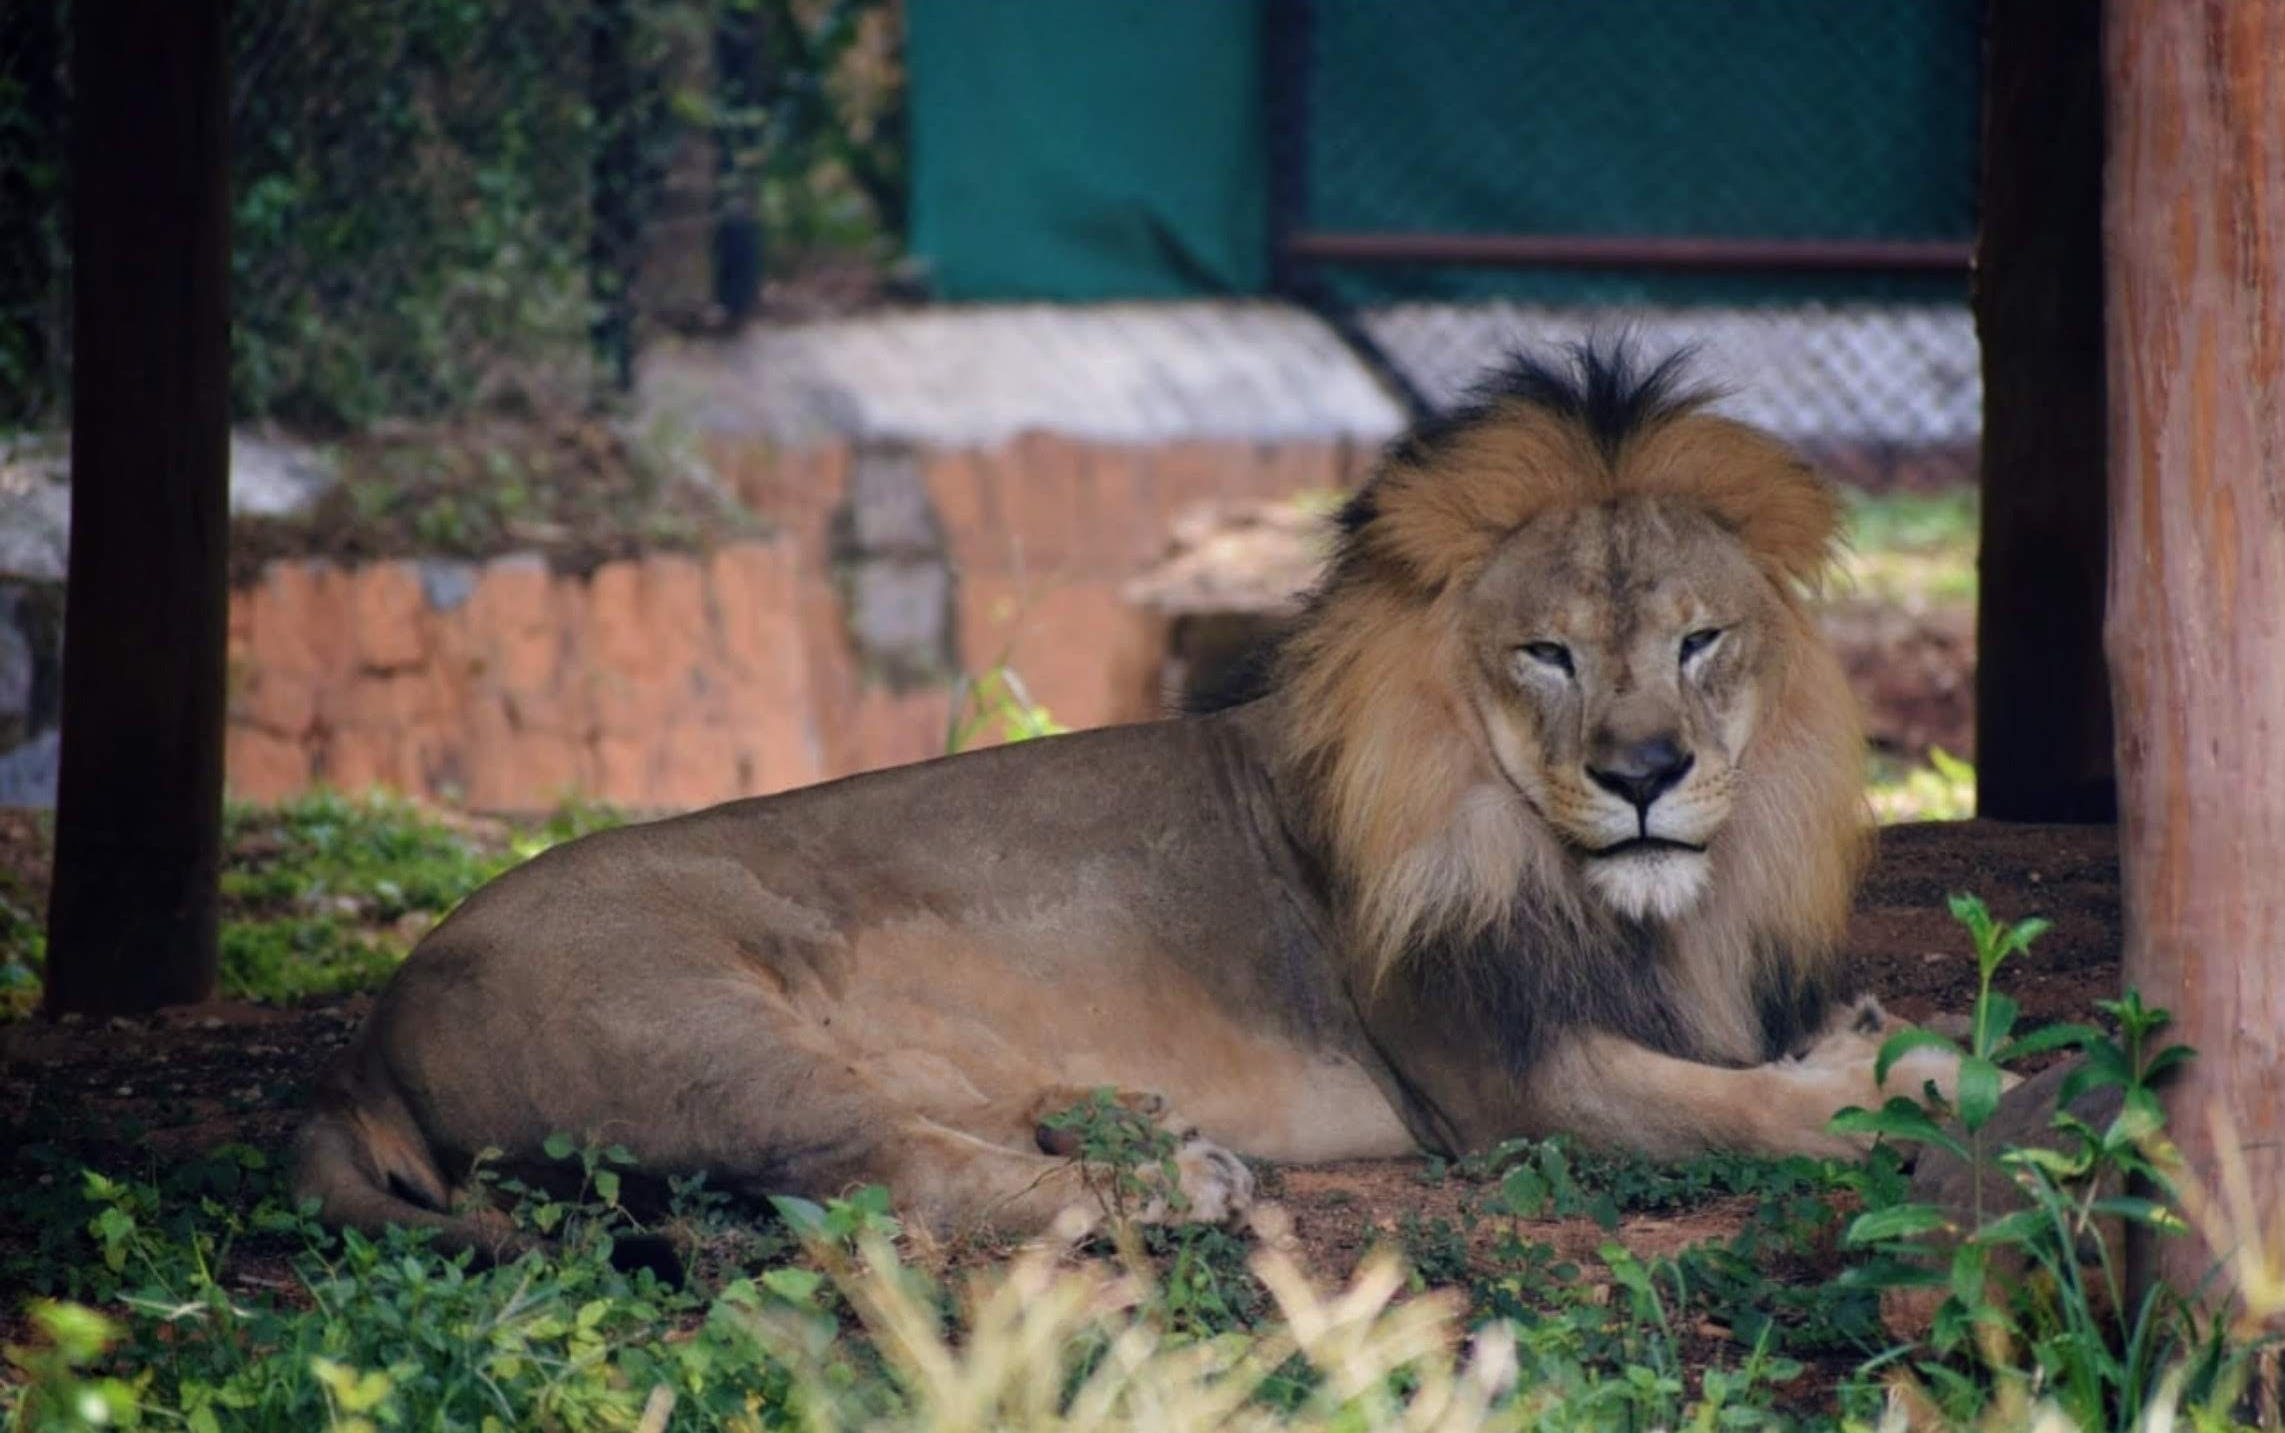 A lion in a zoo